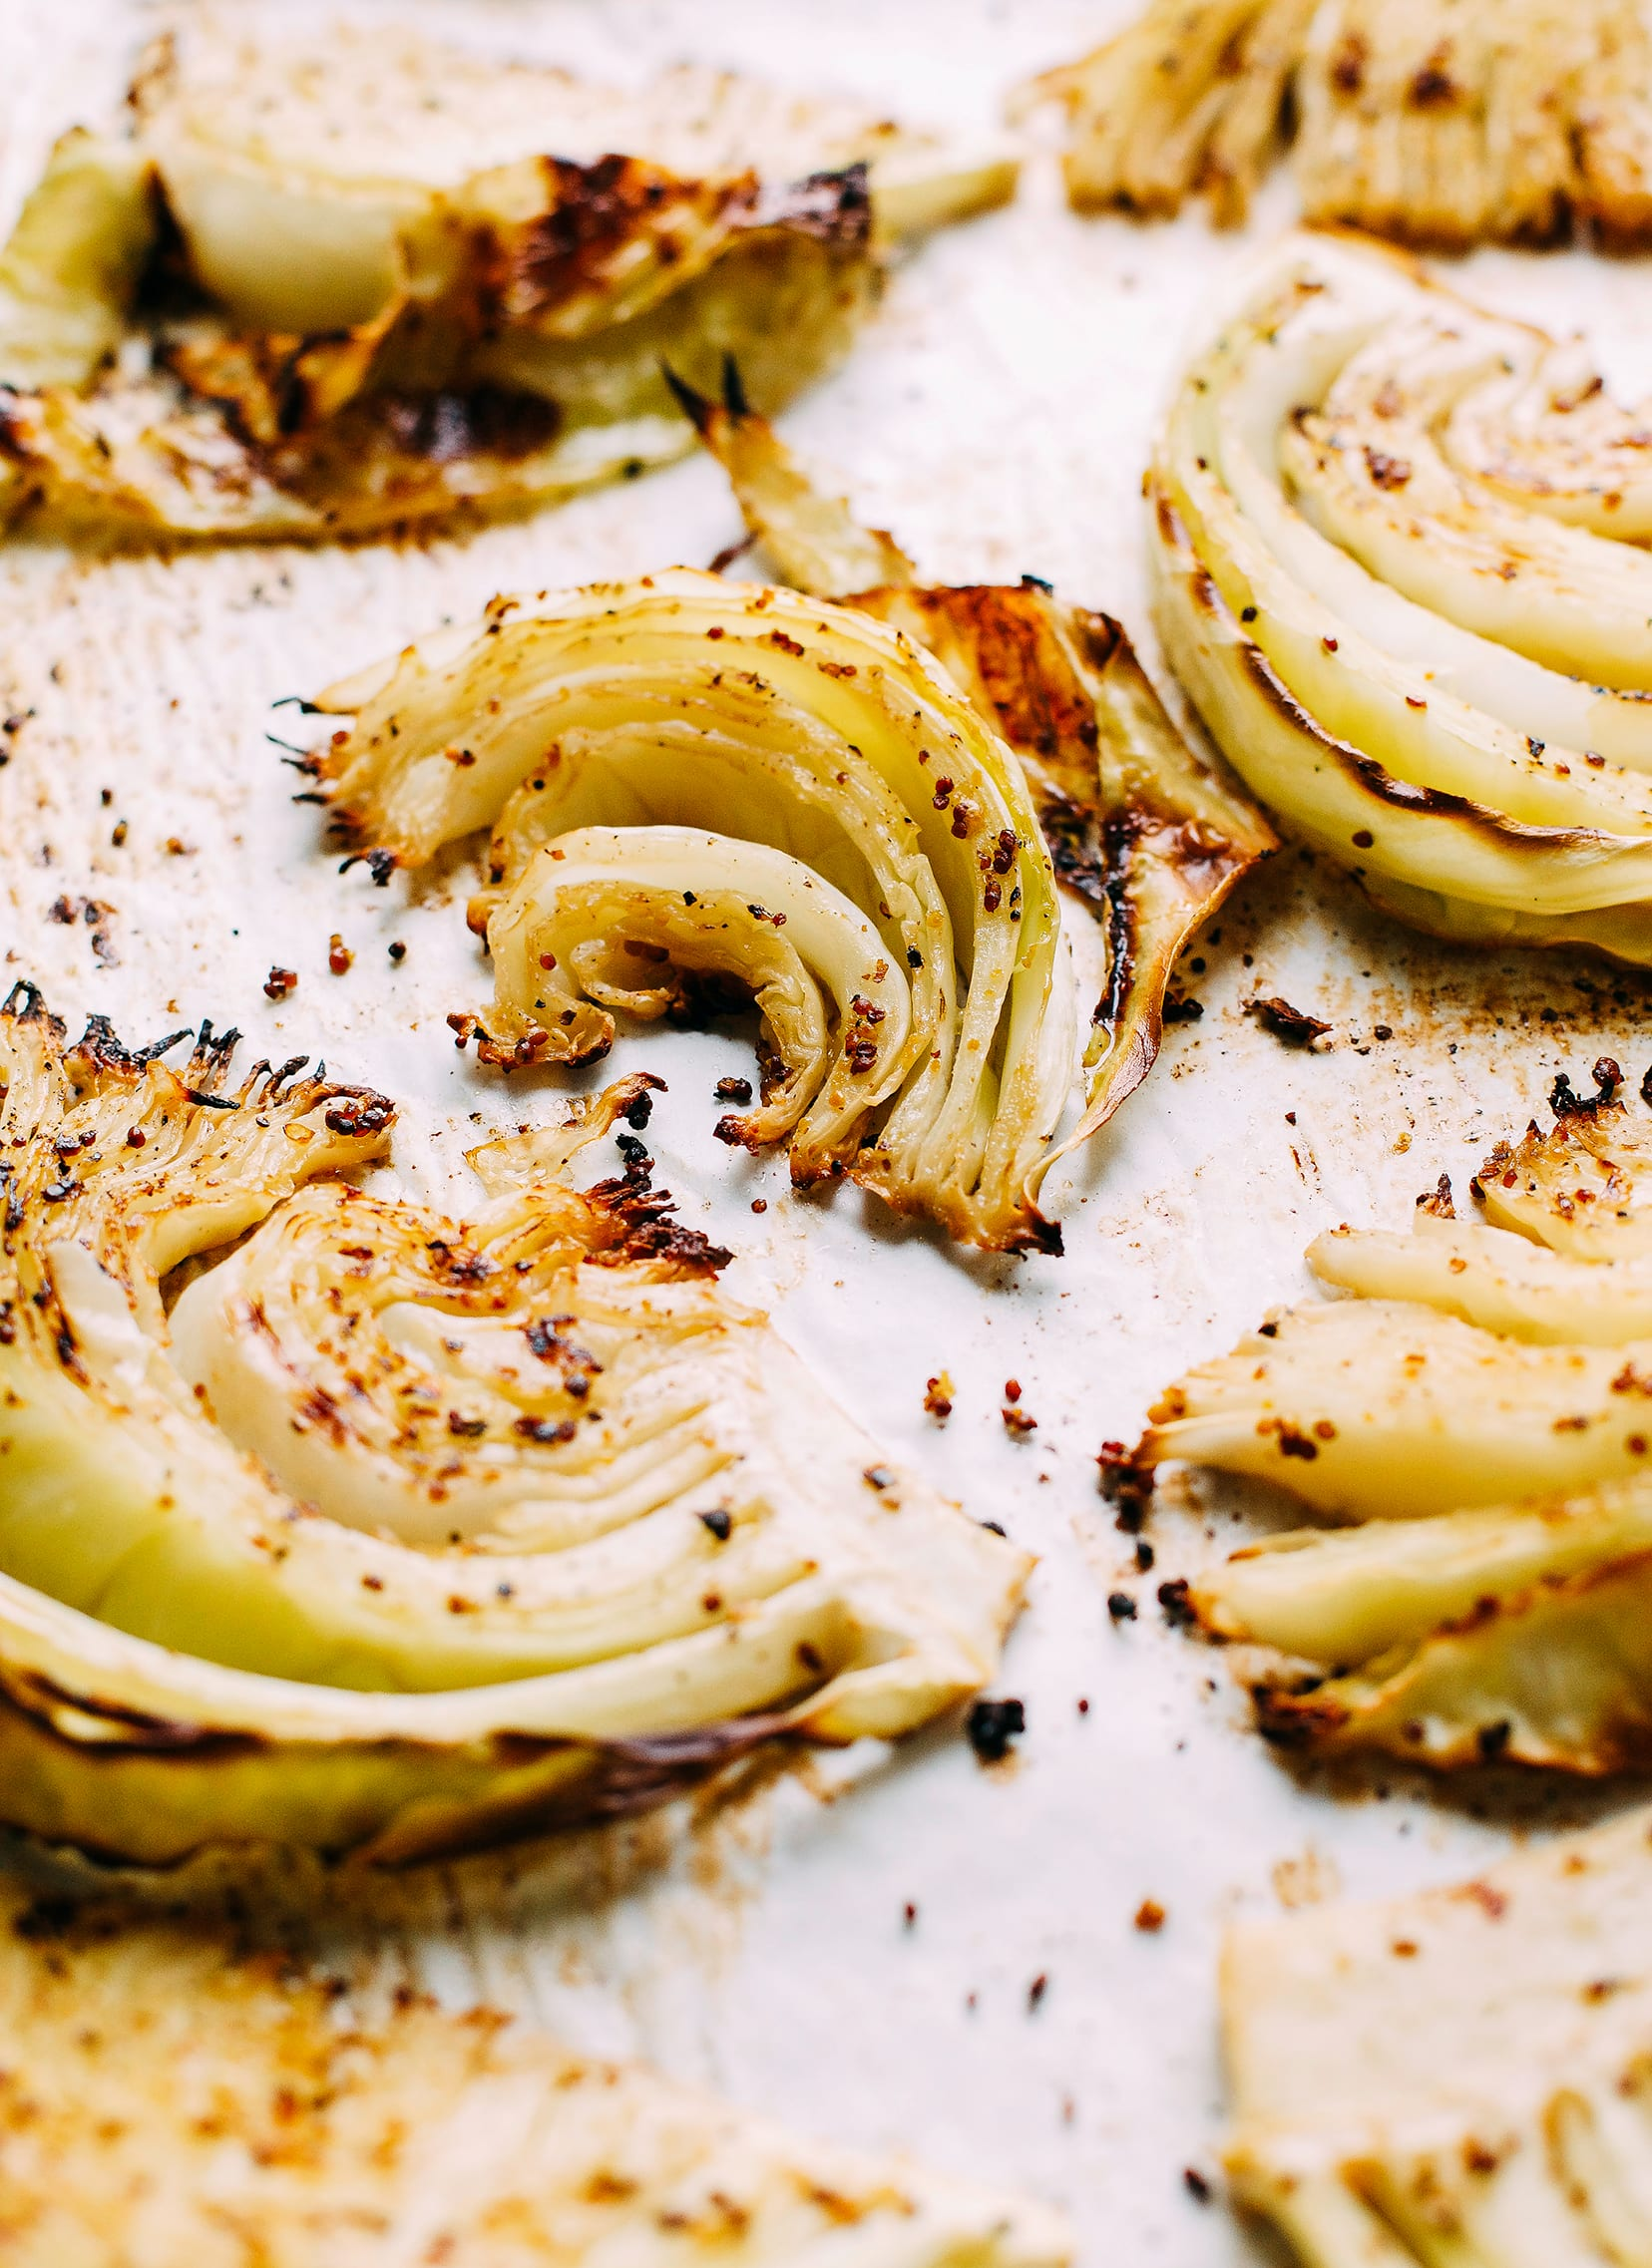 CRISPY MAPLE MUSTARD CABBAGE from The First Mess Cookbook